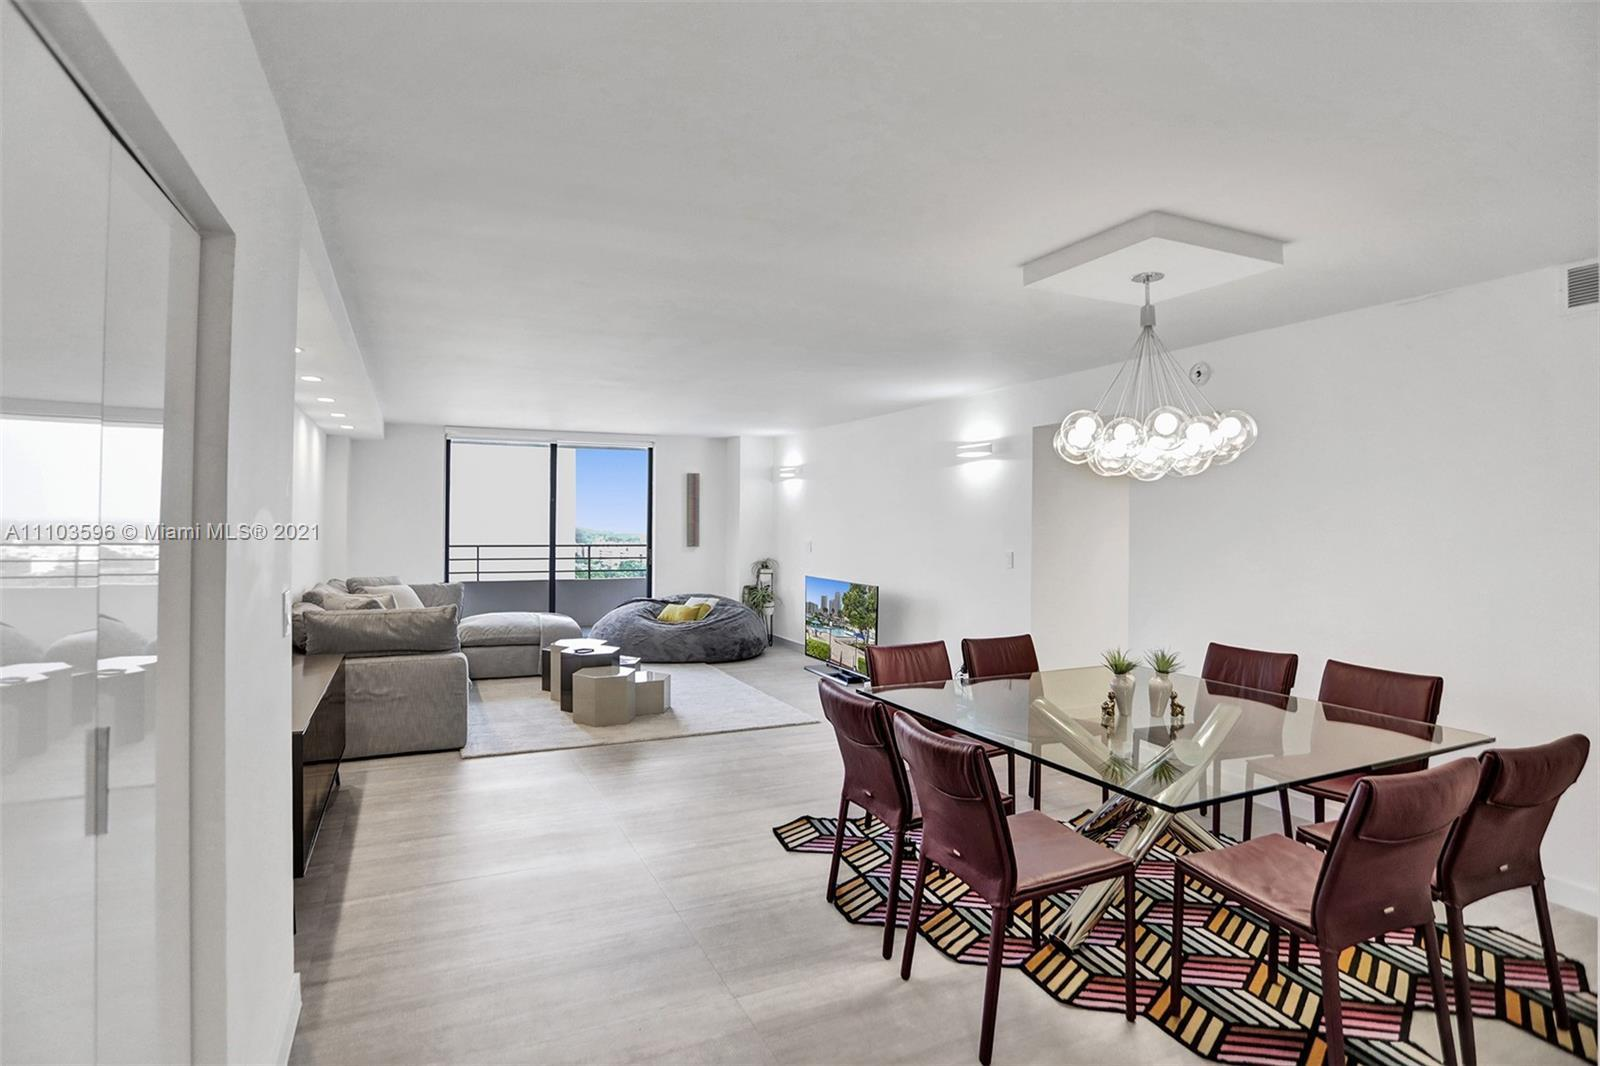 MOVE IN WITH YOUR TOOTHBRUSH! HIGHLY DESIRED COMPLETELY REMODELED 2bed/2bath CORNER UNIT WITH TOP OF